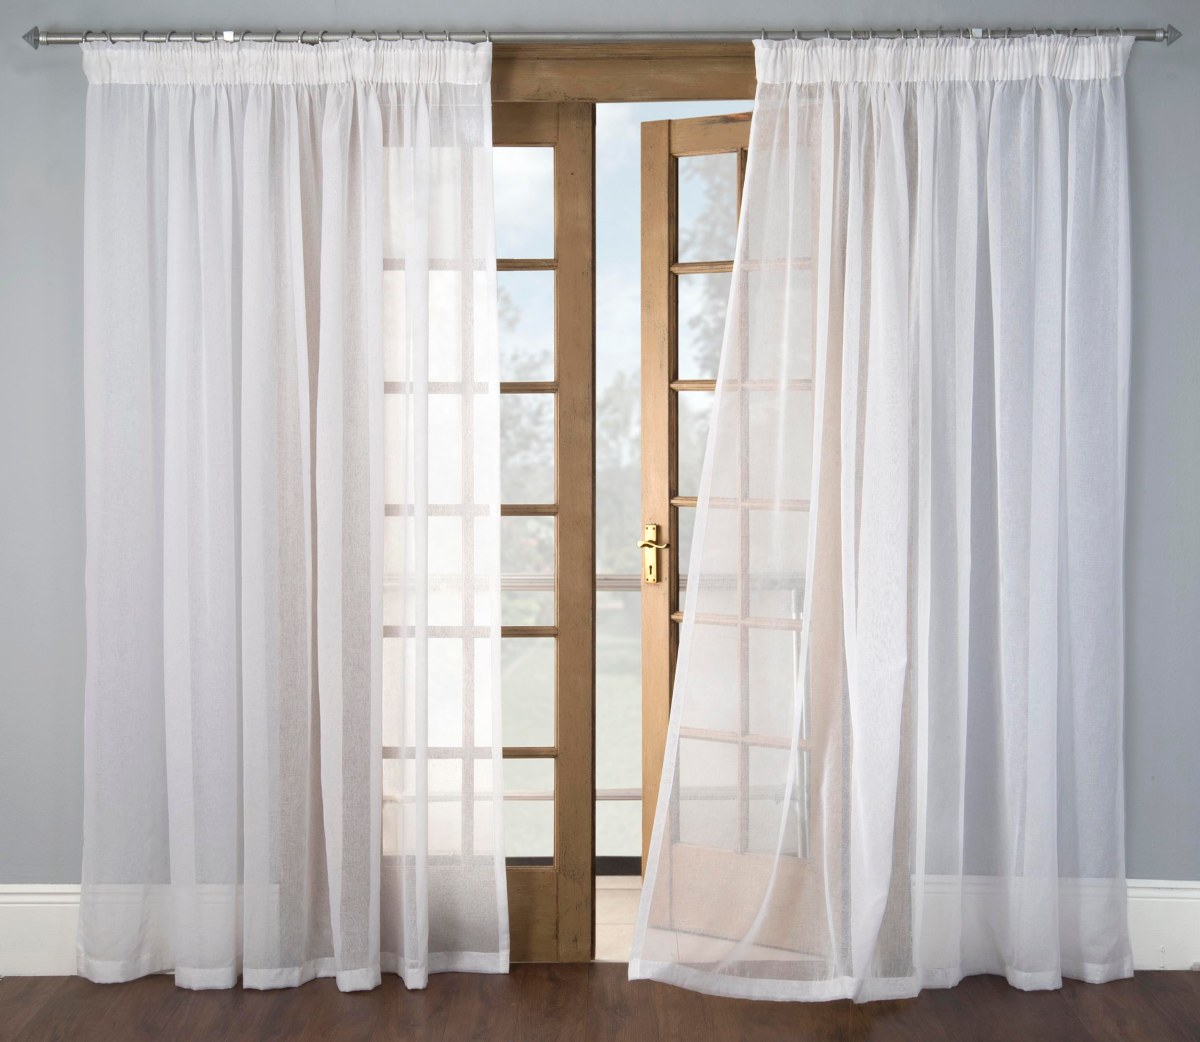 The Volpes Guide to Summer Curtains